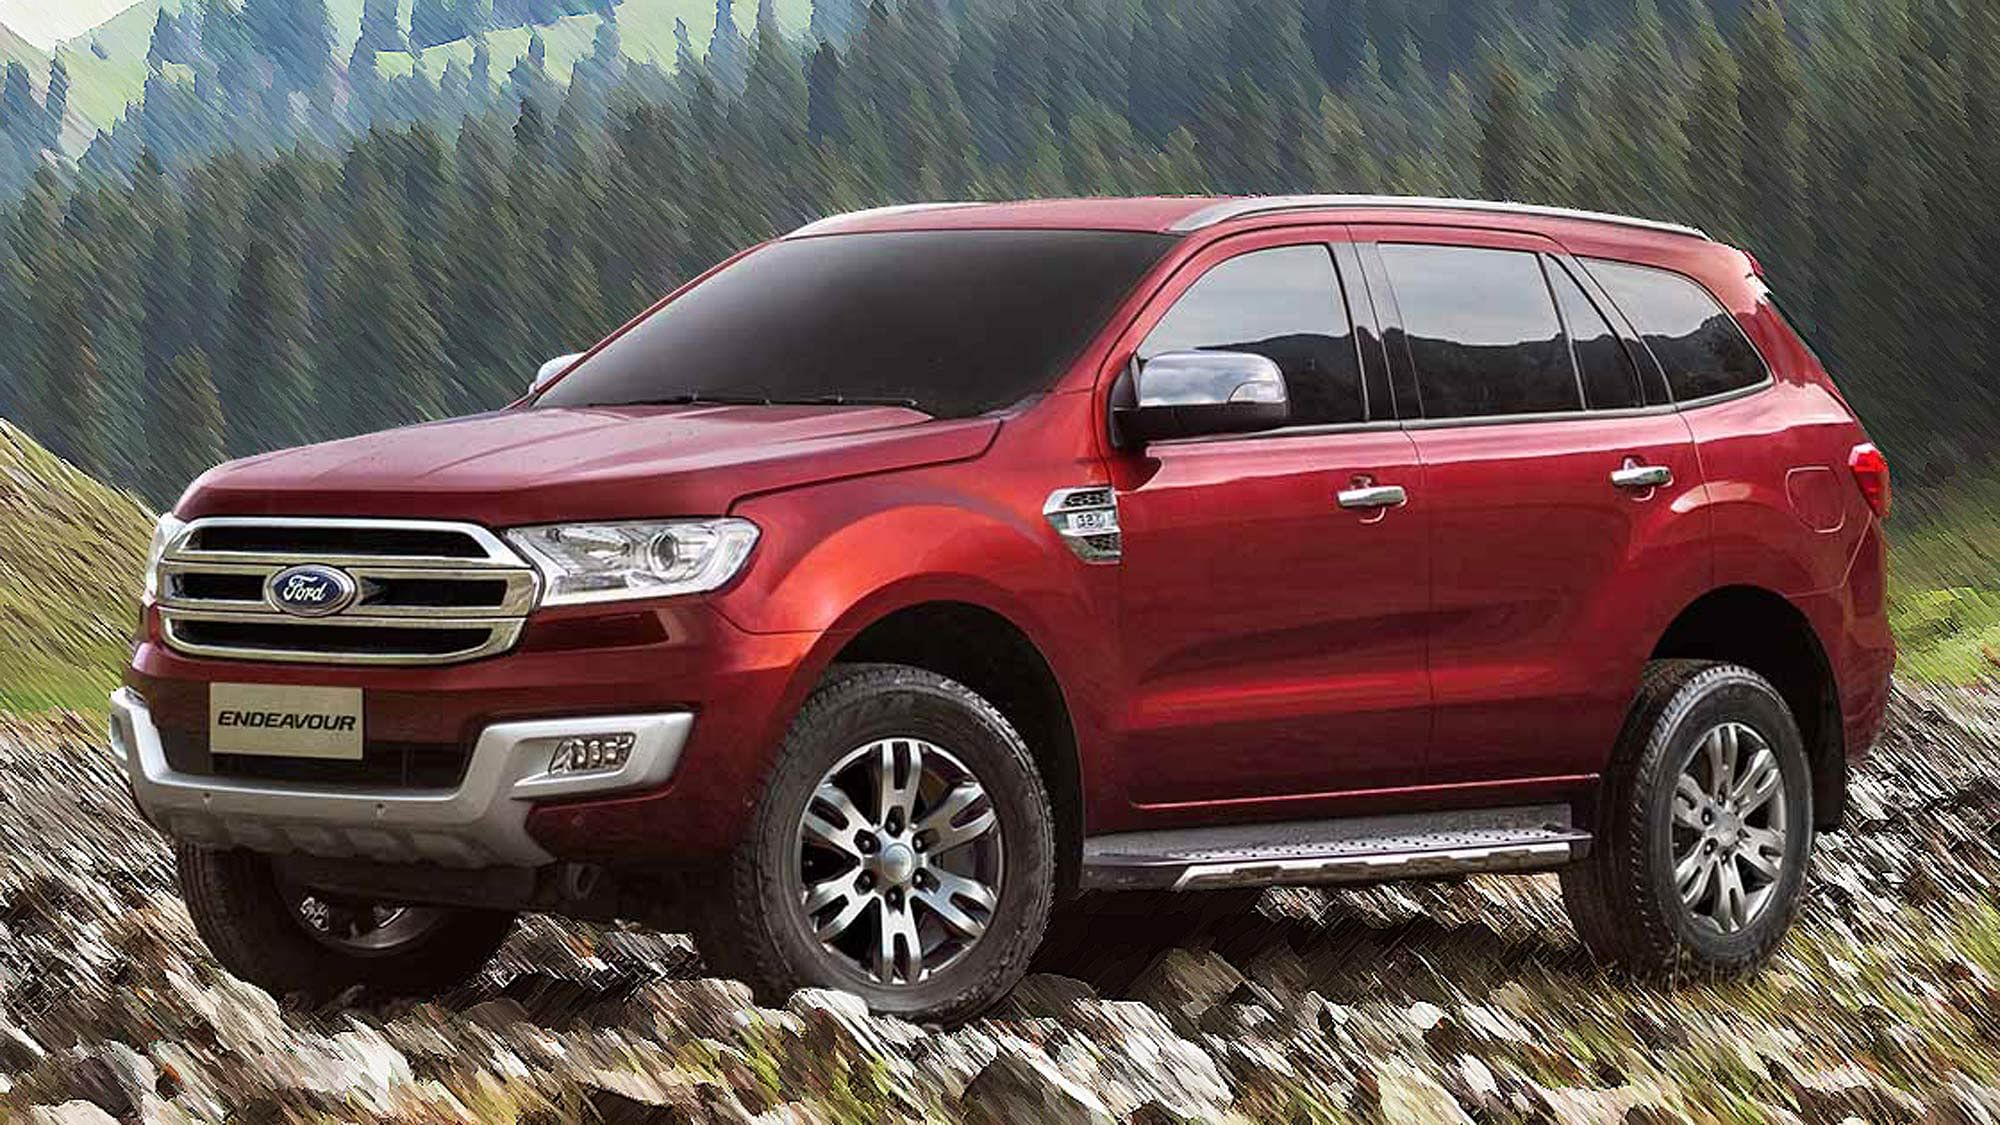 Here's All You Need to Know About the New Ford Endeavour